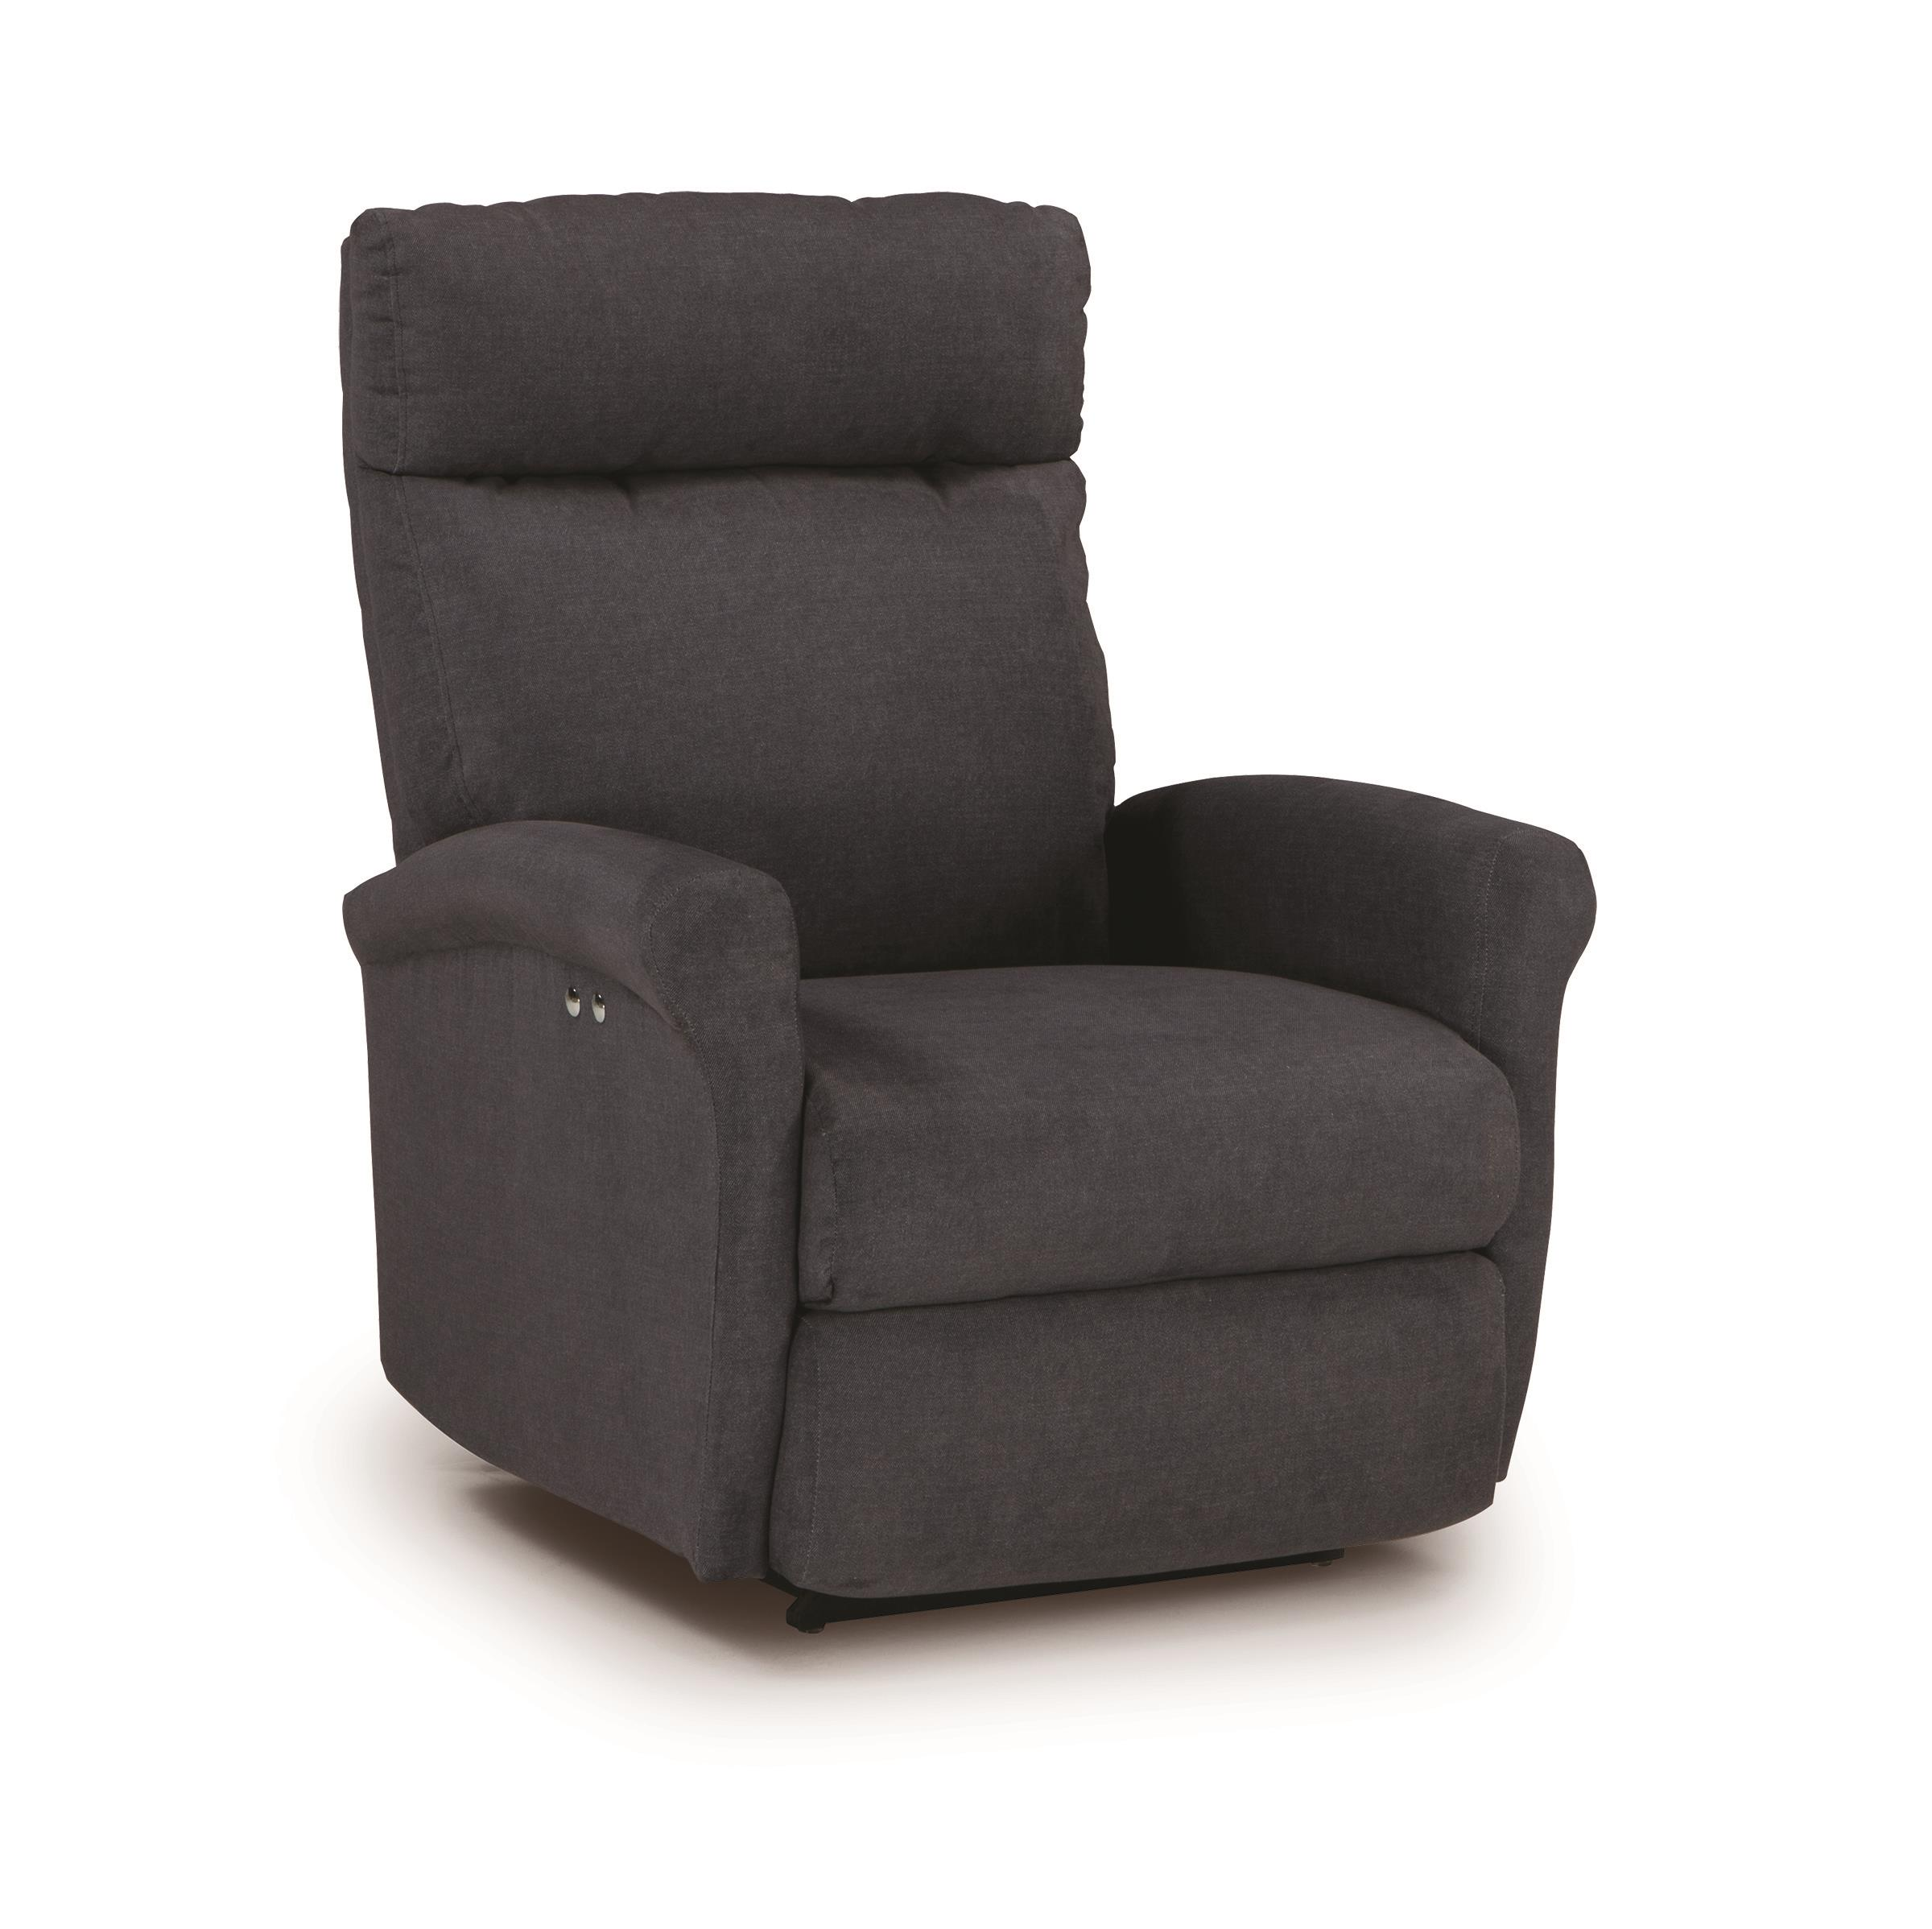 Best Home Furnishings Recliners - Petite Space Saver Recliner - Item Number: 1N04-21472